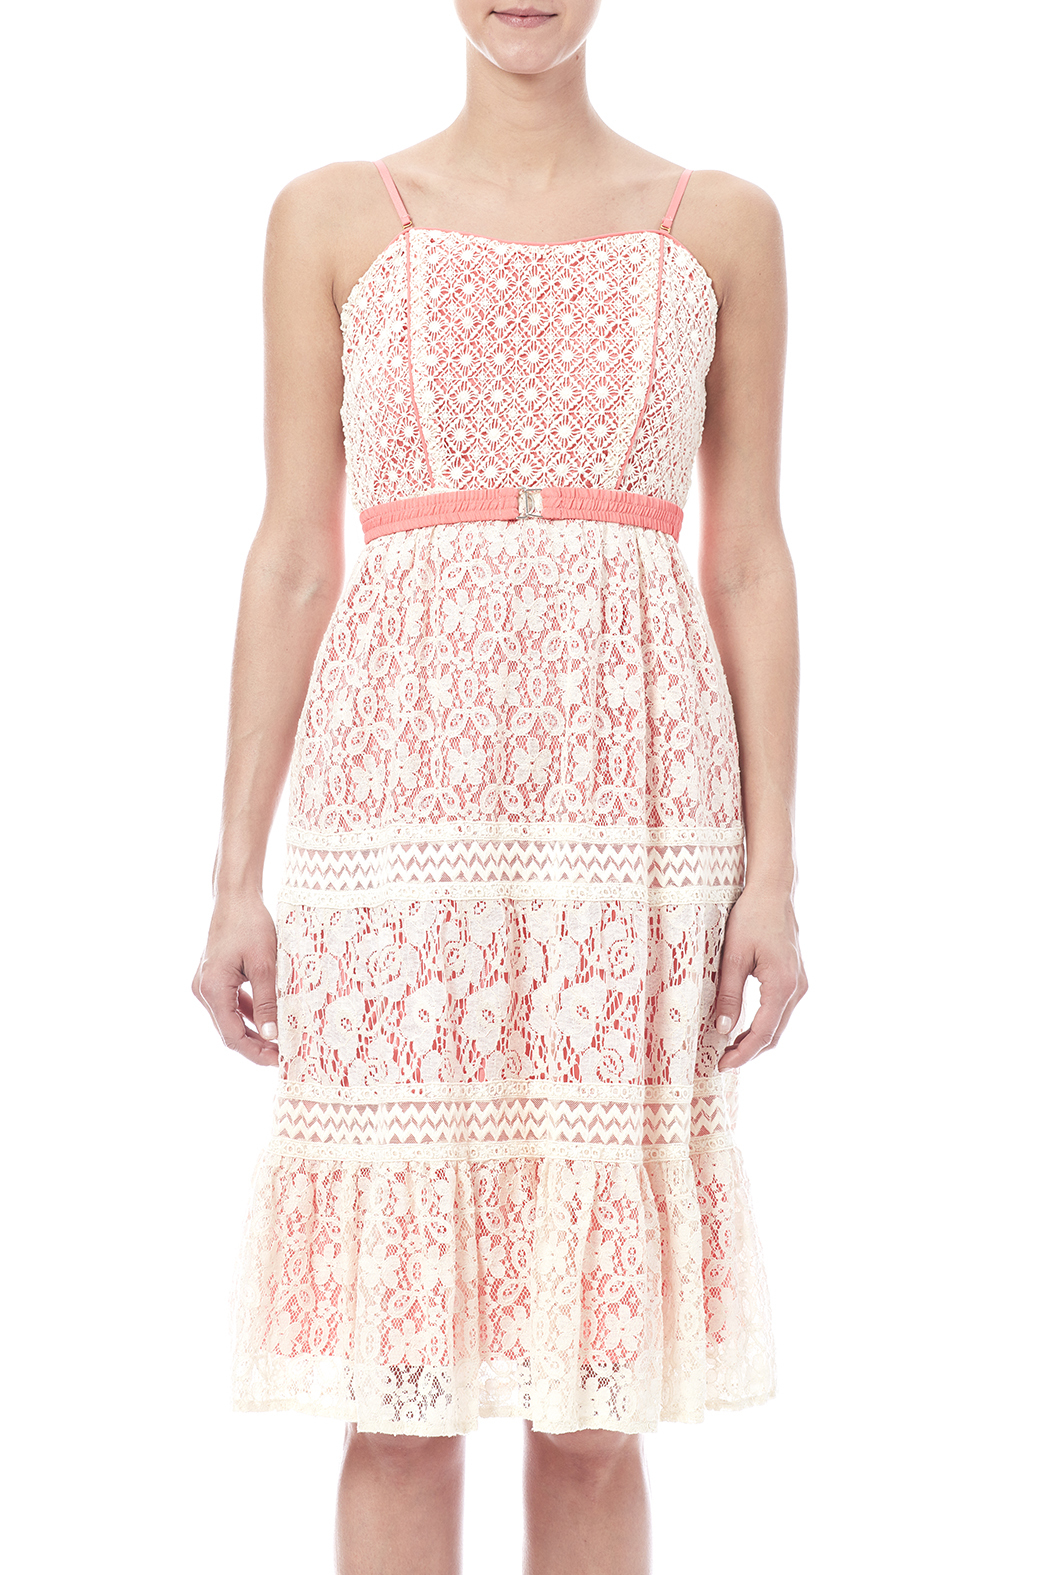 Champagne & Strawberry Lacy Coral Dress - Main Image